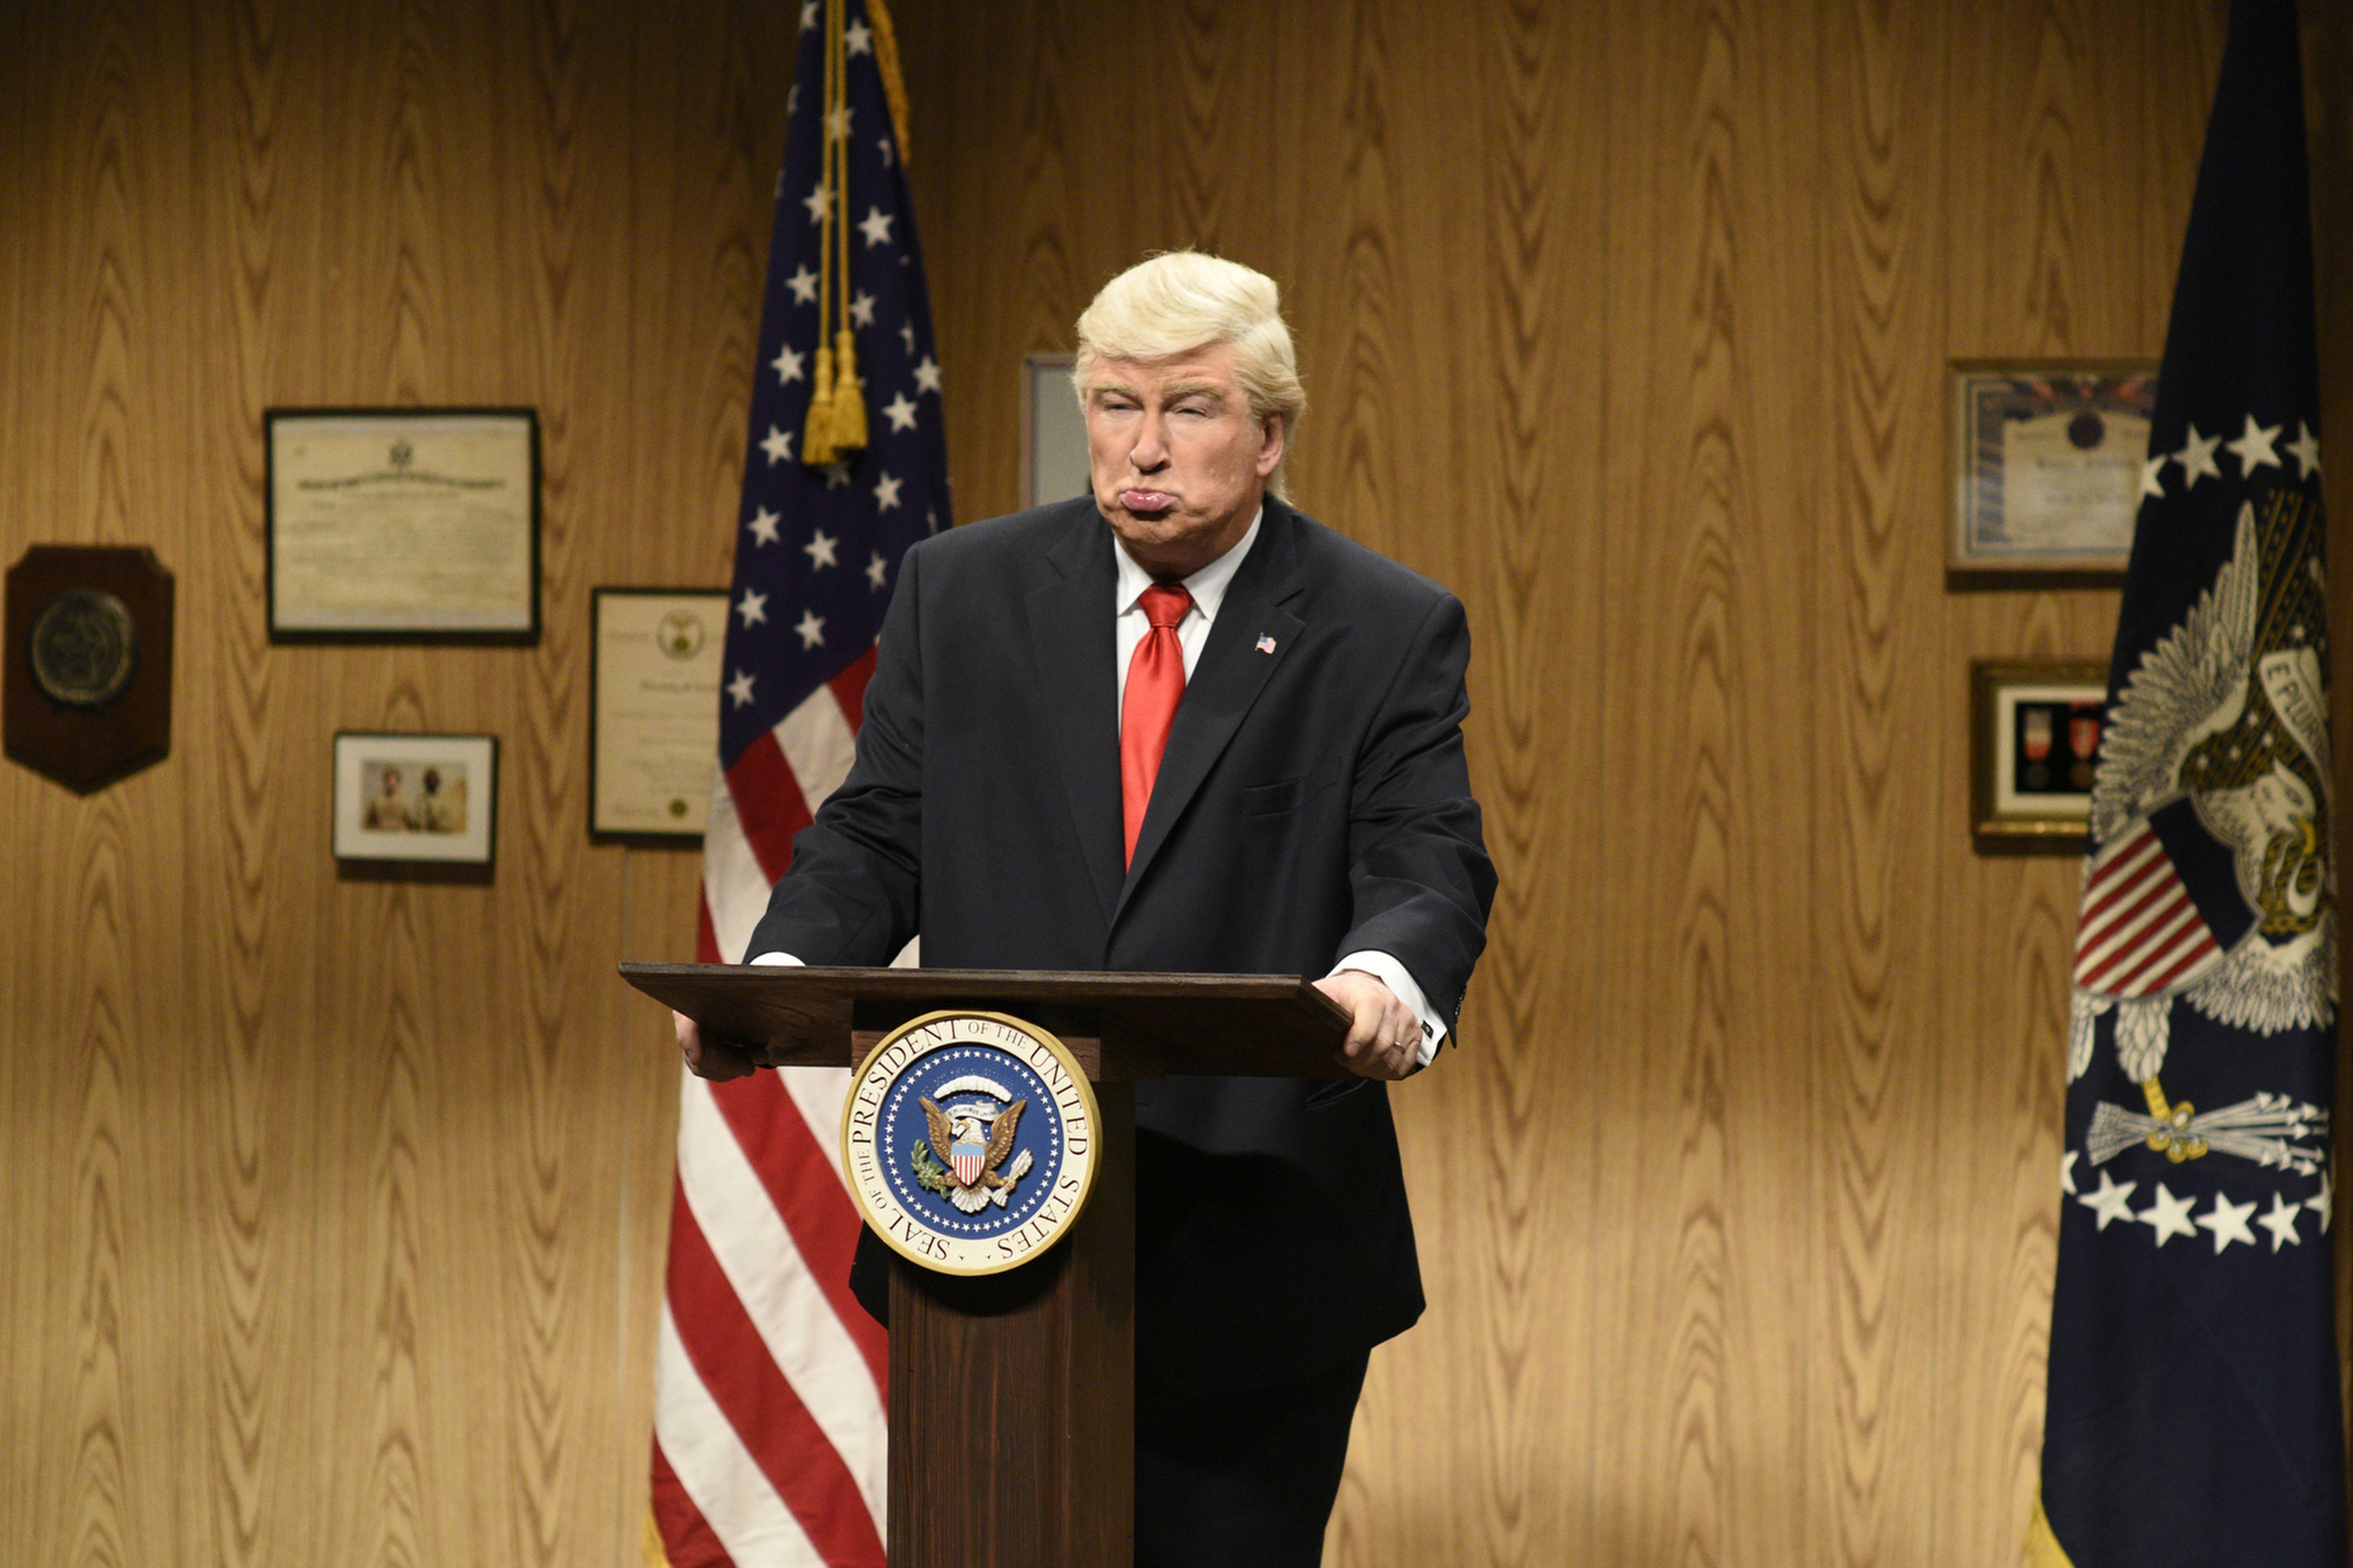 SATURDAY NIGHT LIVE --  Louis C.K.  Episode 1721 -- Pictured: (l-r) Alec Baldwin as President Donald Trump during the  Trump People's Cold Open  on April 8, 2017 -- (Photo by: Will Heath/NBC/NBCU Photo Bank via Getty Images)